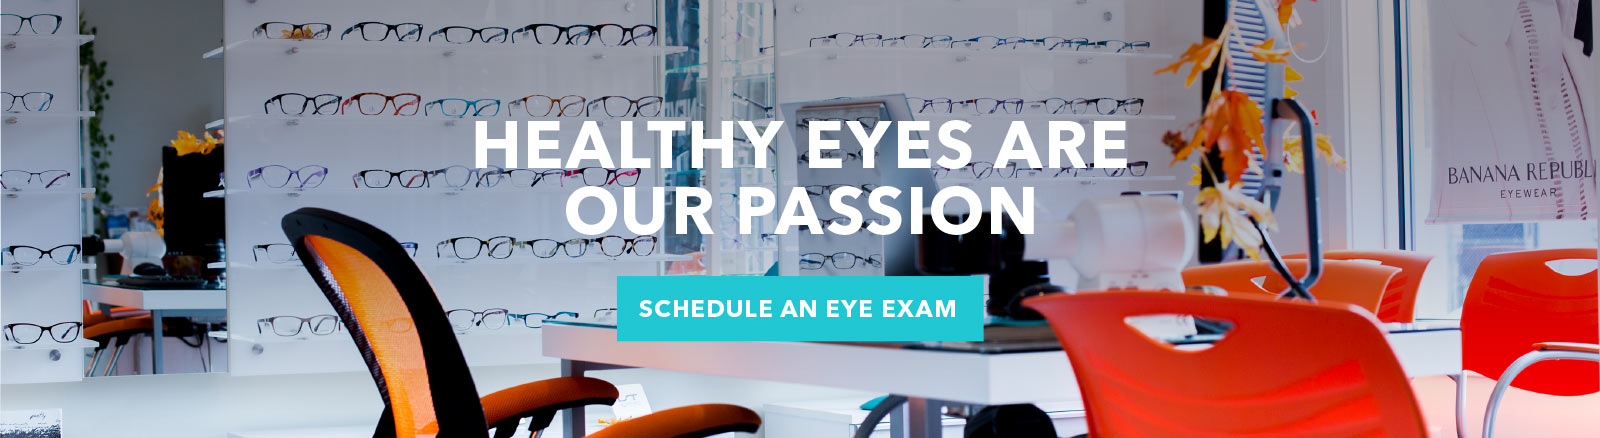 eye exams roslindale